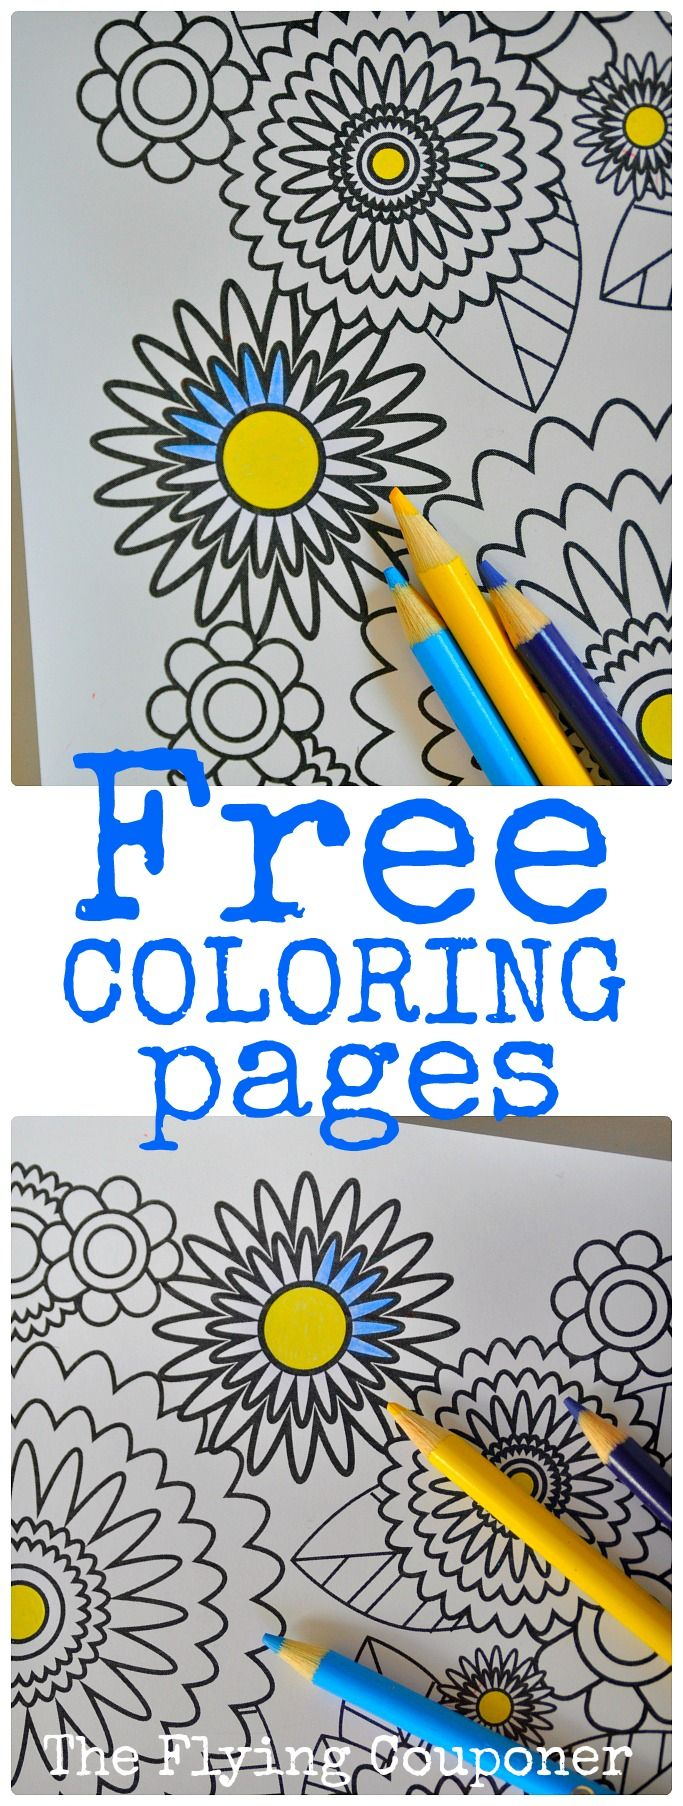 371 best coloring pages images on pinterest coloring books